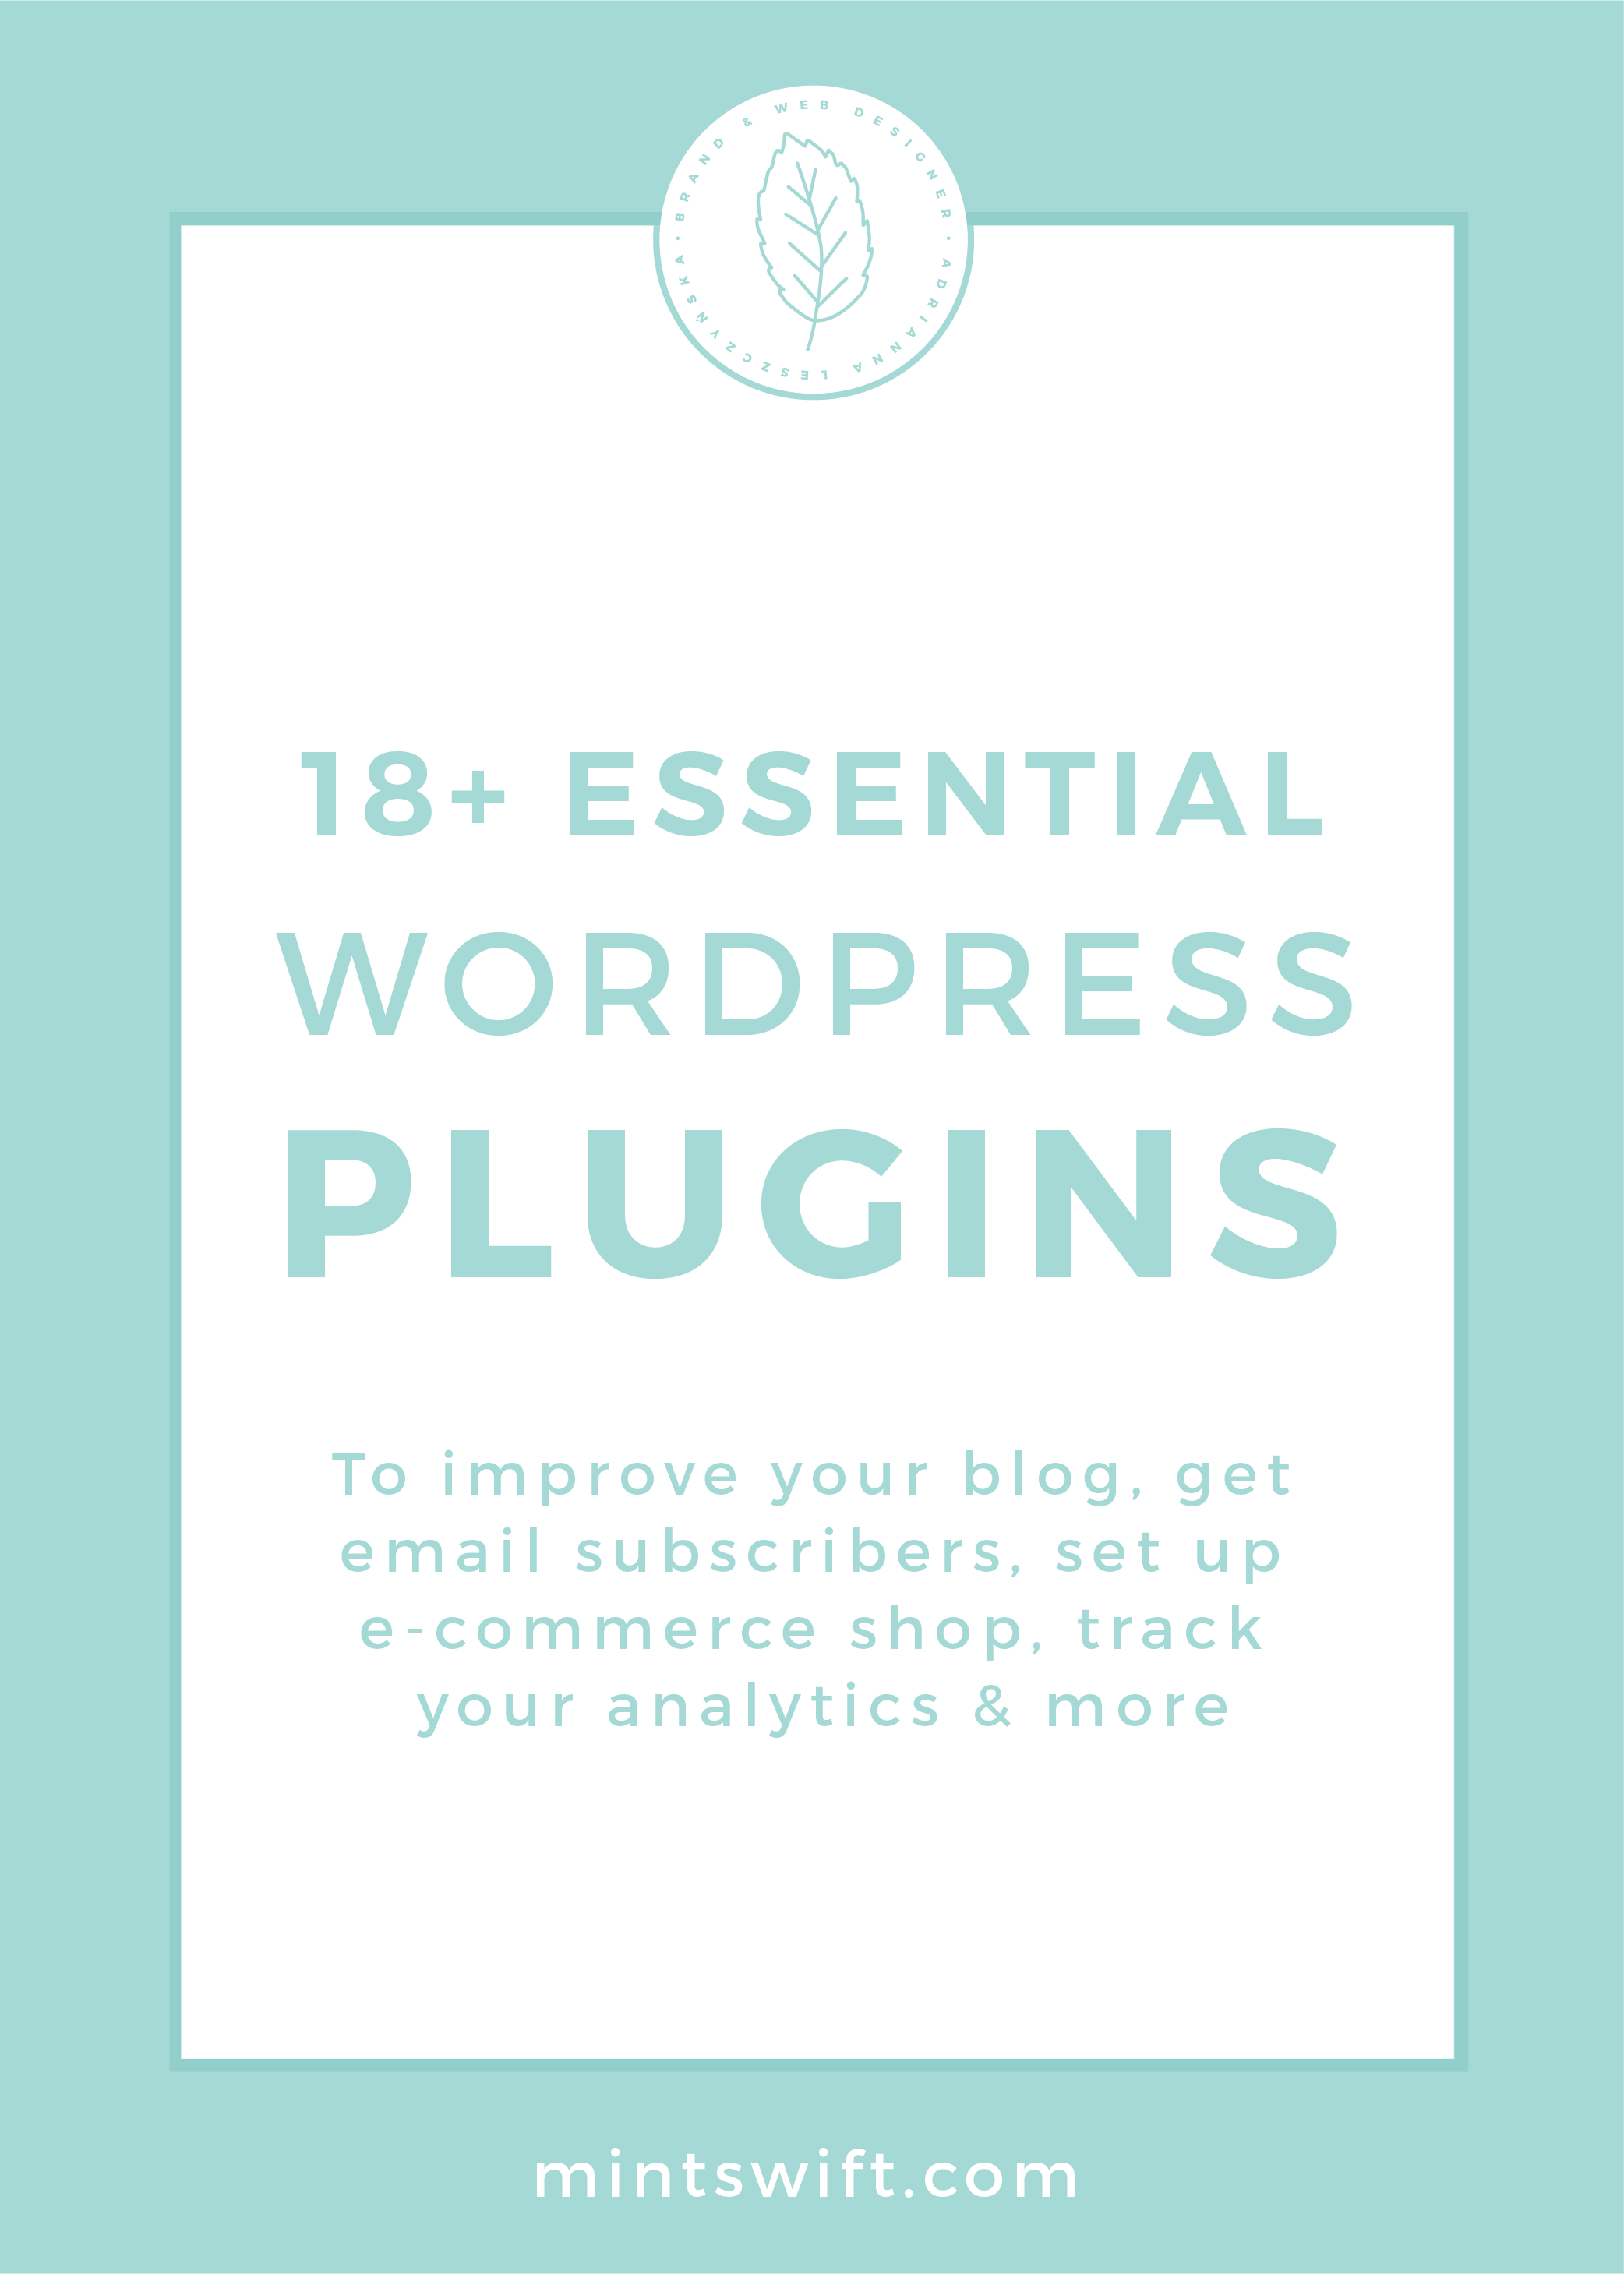 18+ Essential WordPress Plugins. To Improve Your Blog, Get Email Subscribers, Set Up E-Commerce Shop, Track Your Analytics & More by MintSwift